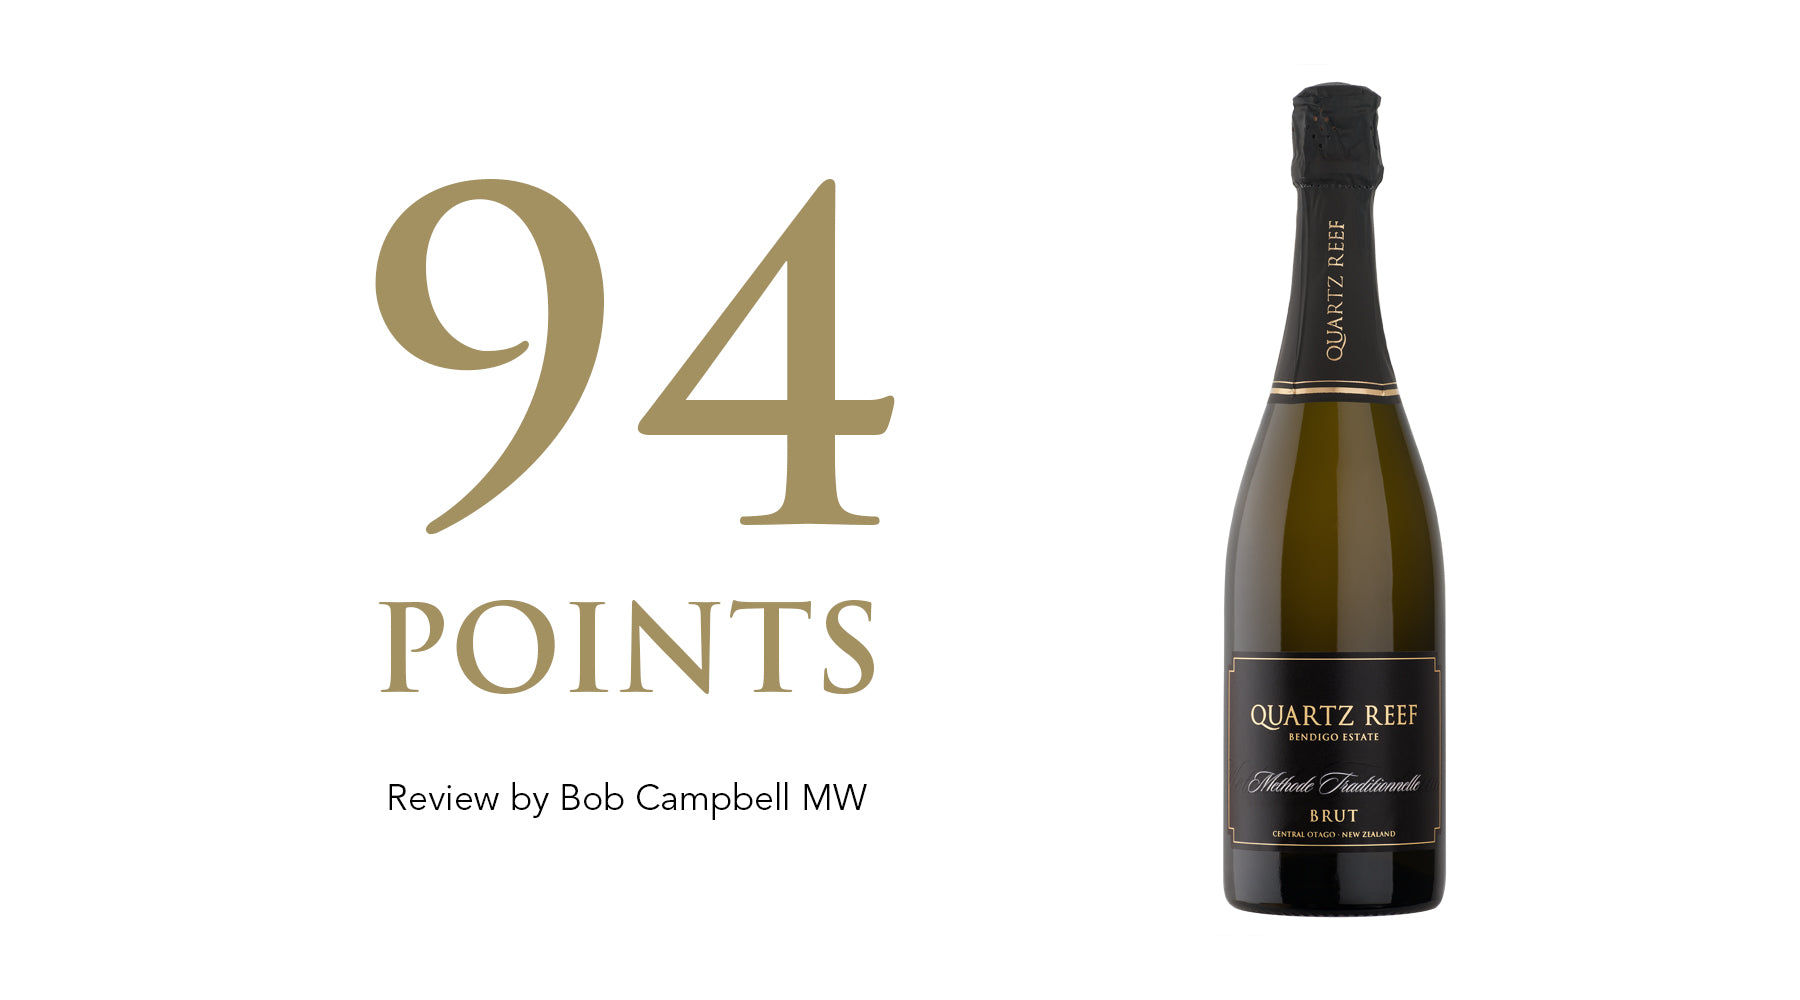 Methode Traditionnellé Brut - Awarded 94 Points